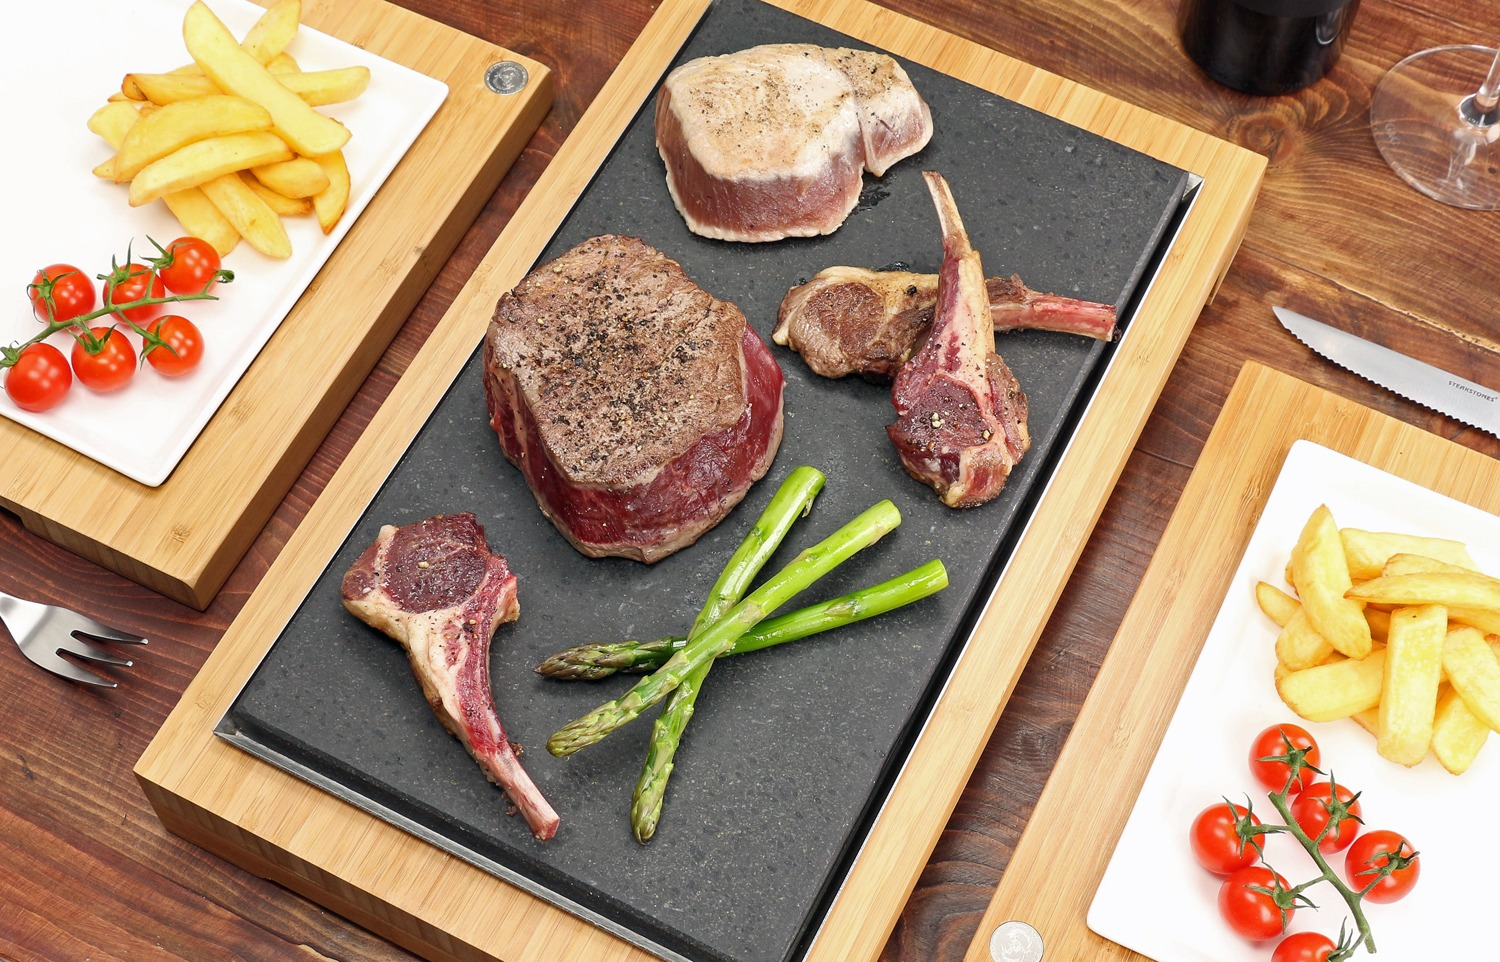 Fillet & Tuna Steak and Lamb Cutlets on the Raised Sharing Steak Plate